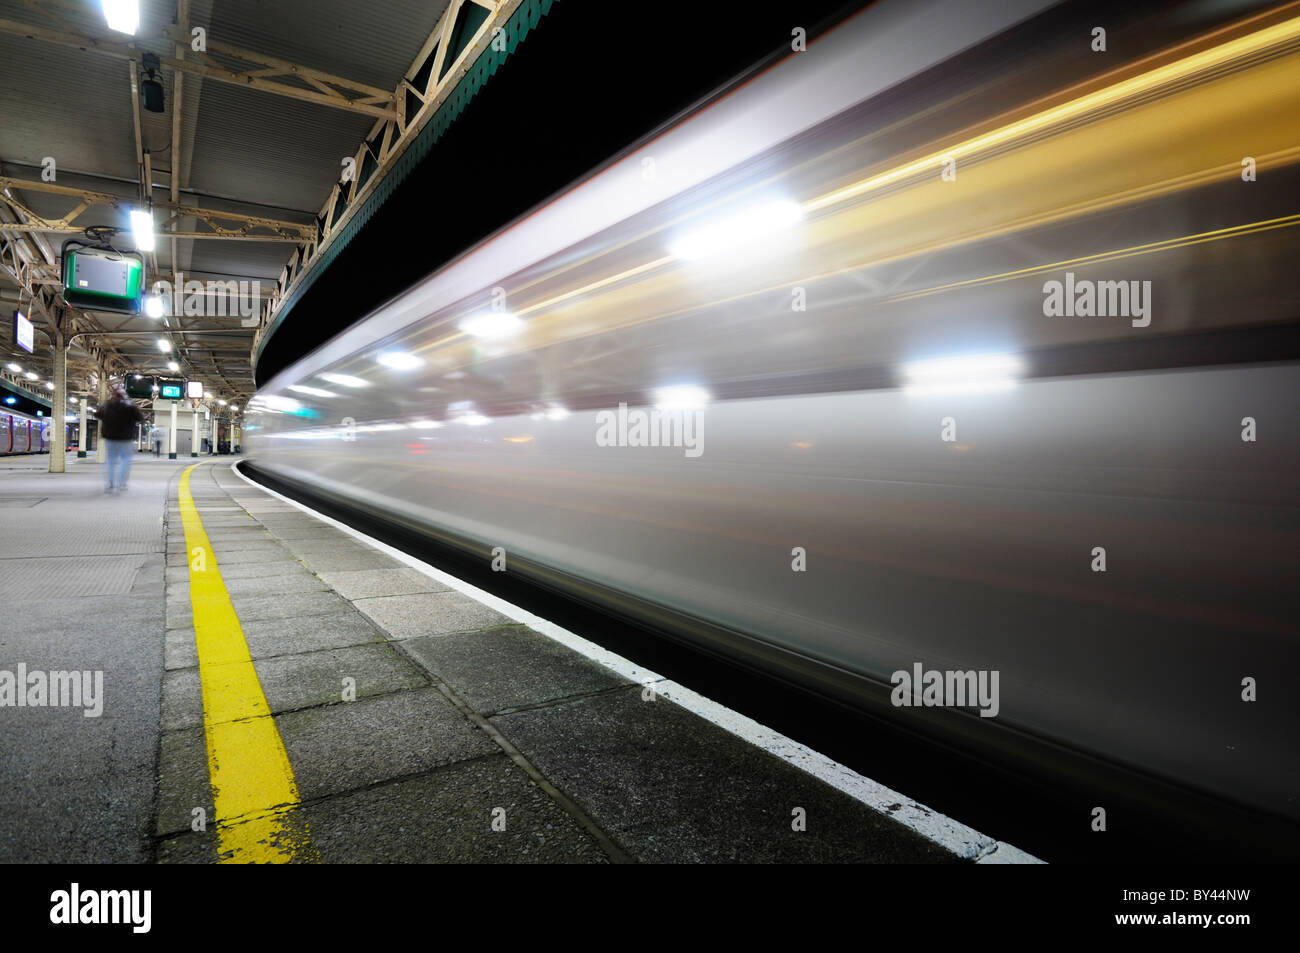 High speed train passing through a almost deserted railway station platform at night creating streaks of light. - Stock Image